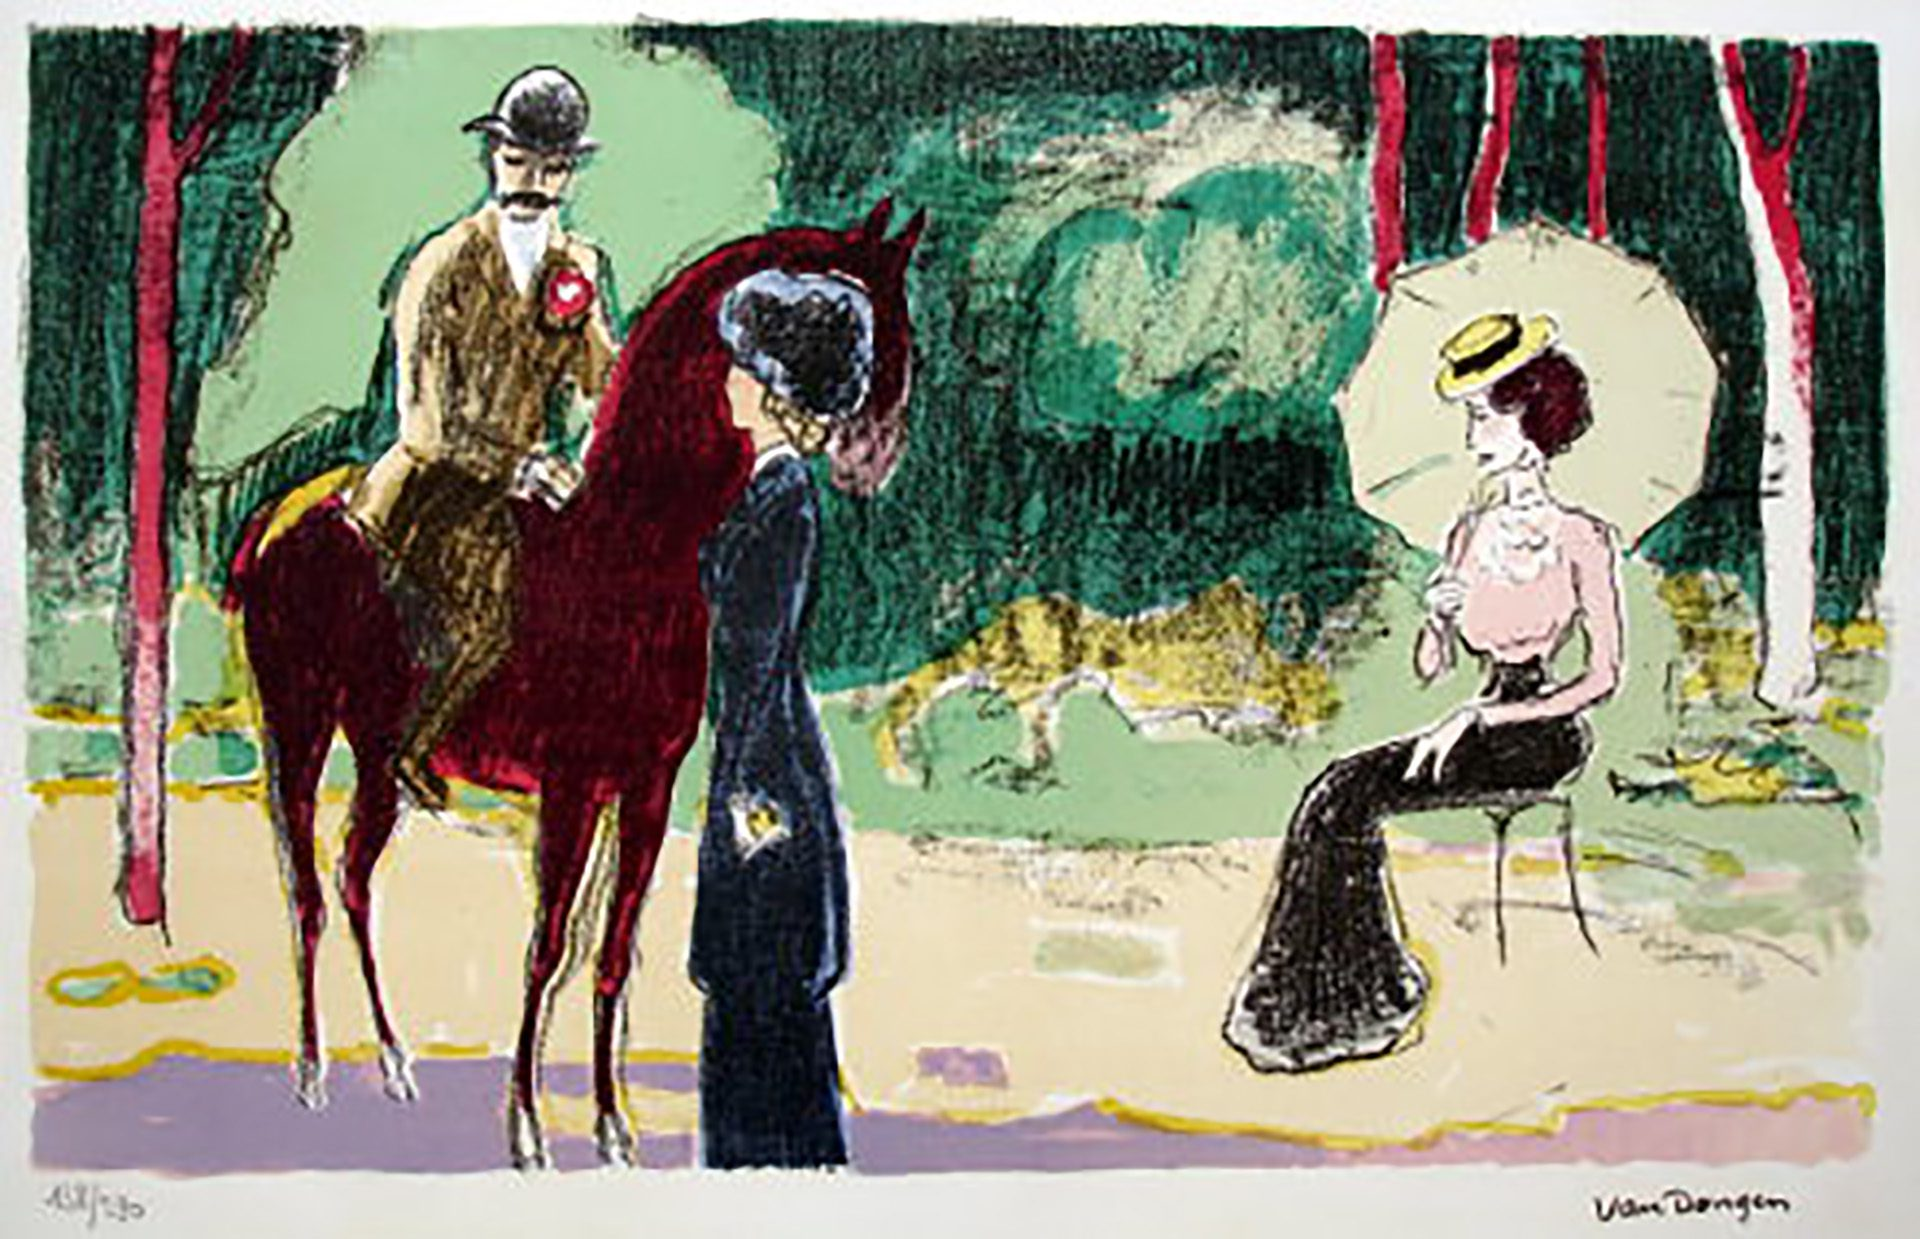 35_Kees_Van_Dongen_JL26_Meeting_in_the_Woods_2